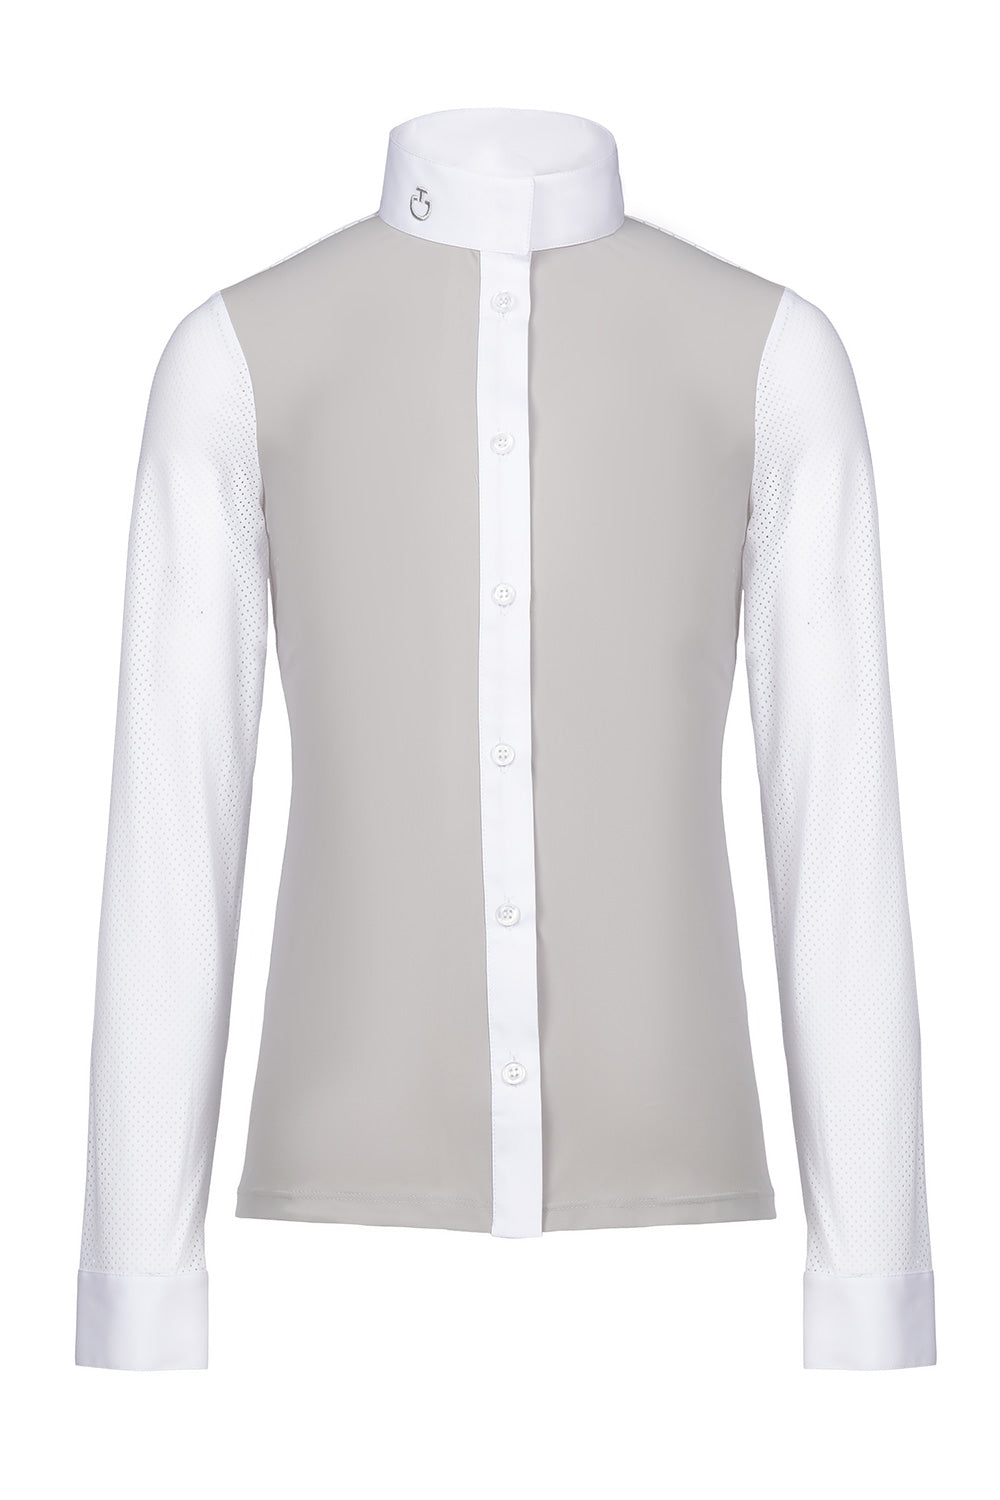 Cavalleria Toscana Young Riders Perforated Jersey Shirt - Luxe EQ